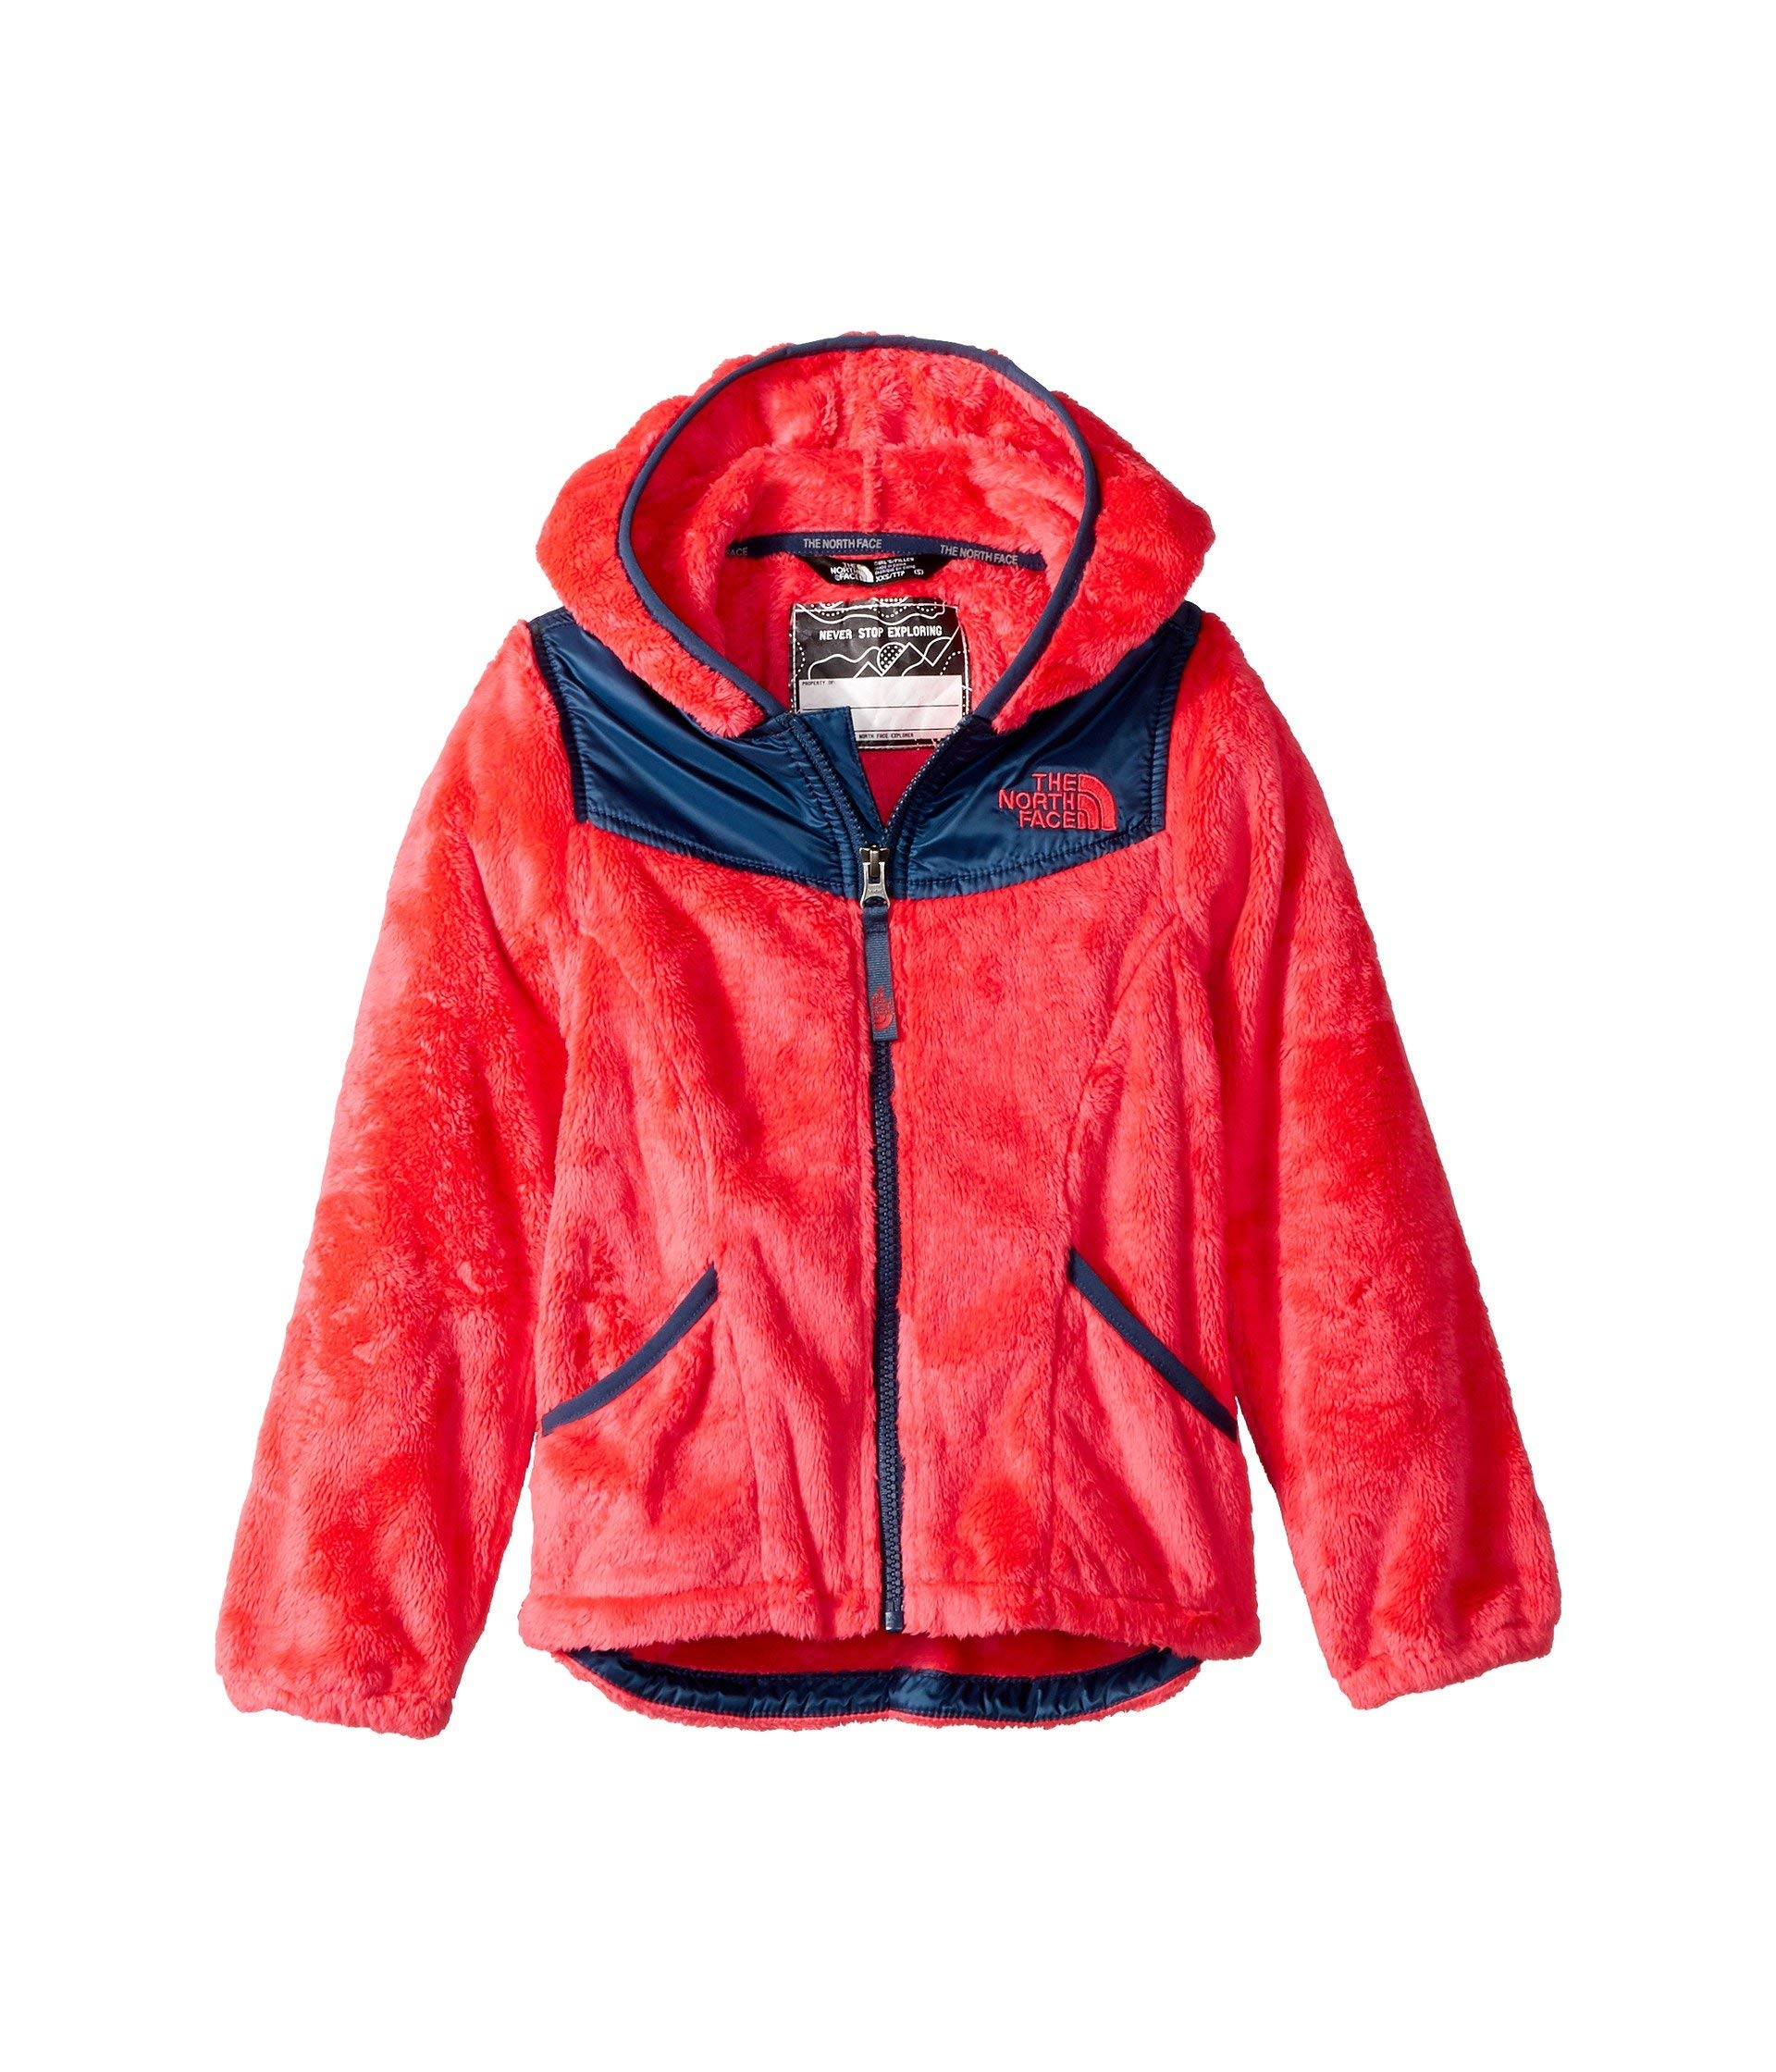 The North Face Girl's OSO Hoodie - Atomic Pink - XXS